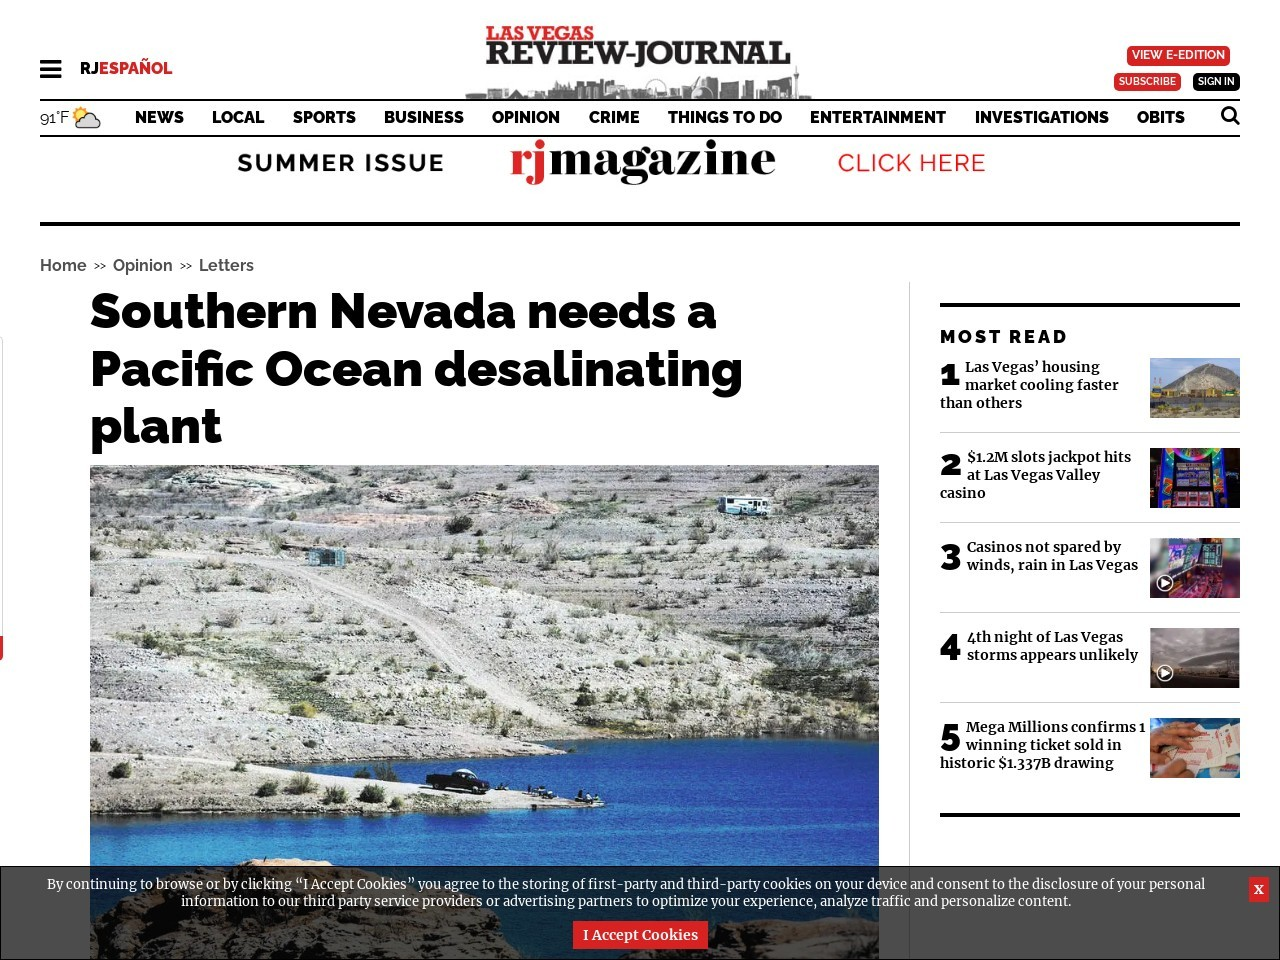 Southern Nevada needs a Pacific Ocean desalinating plant